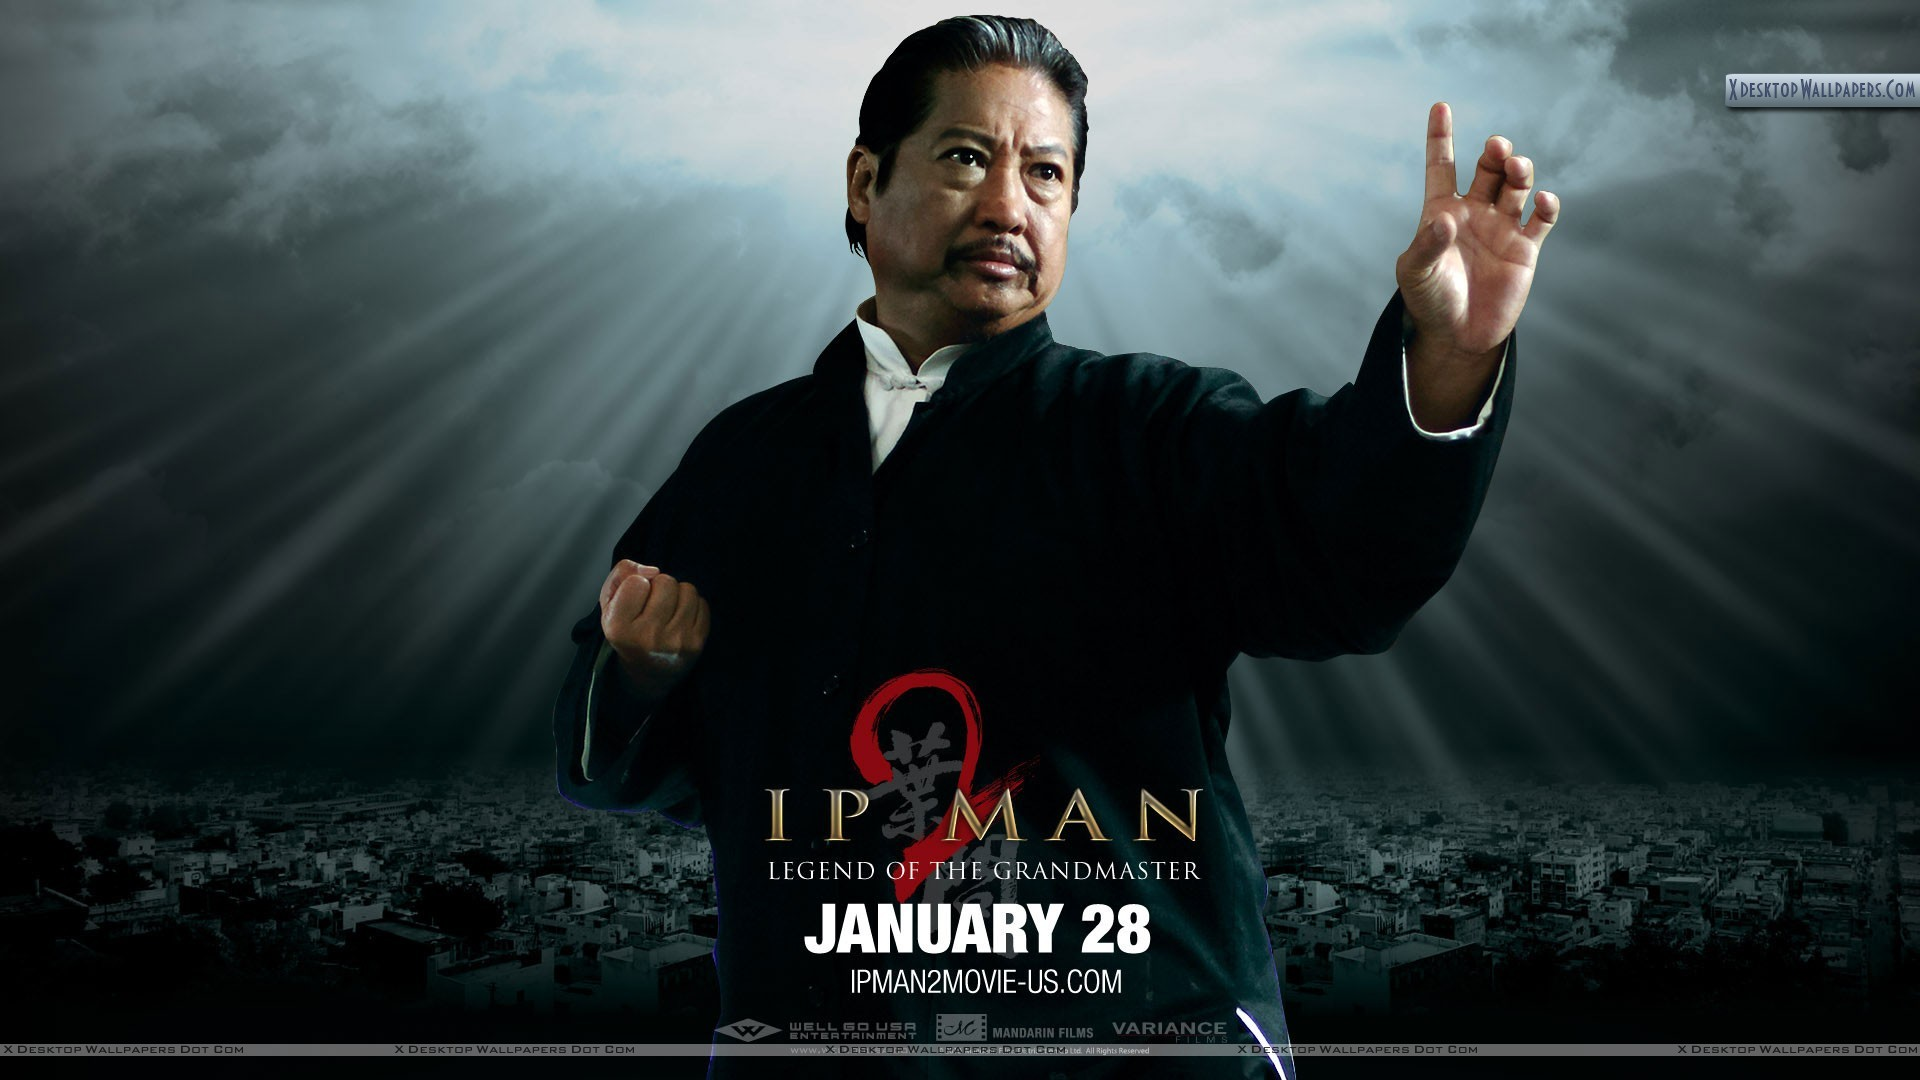 IP Man 2 Wallpapers Photos Images in HD 1920x1080